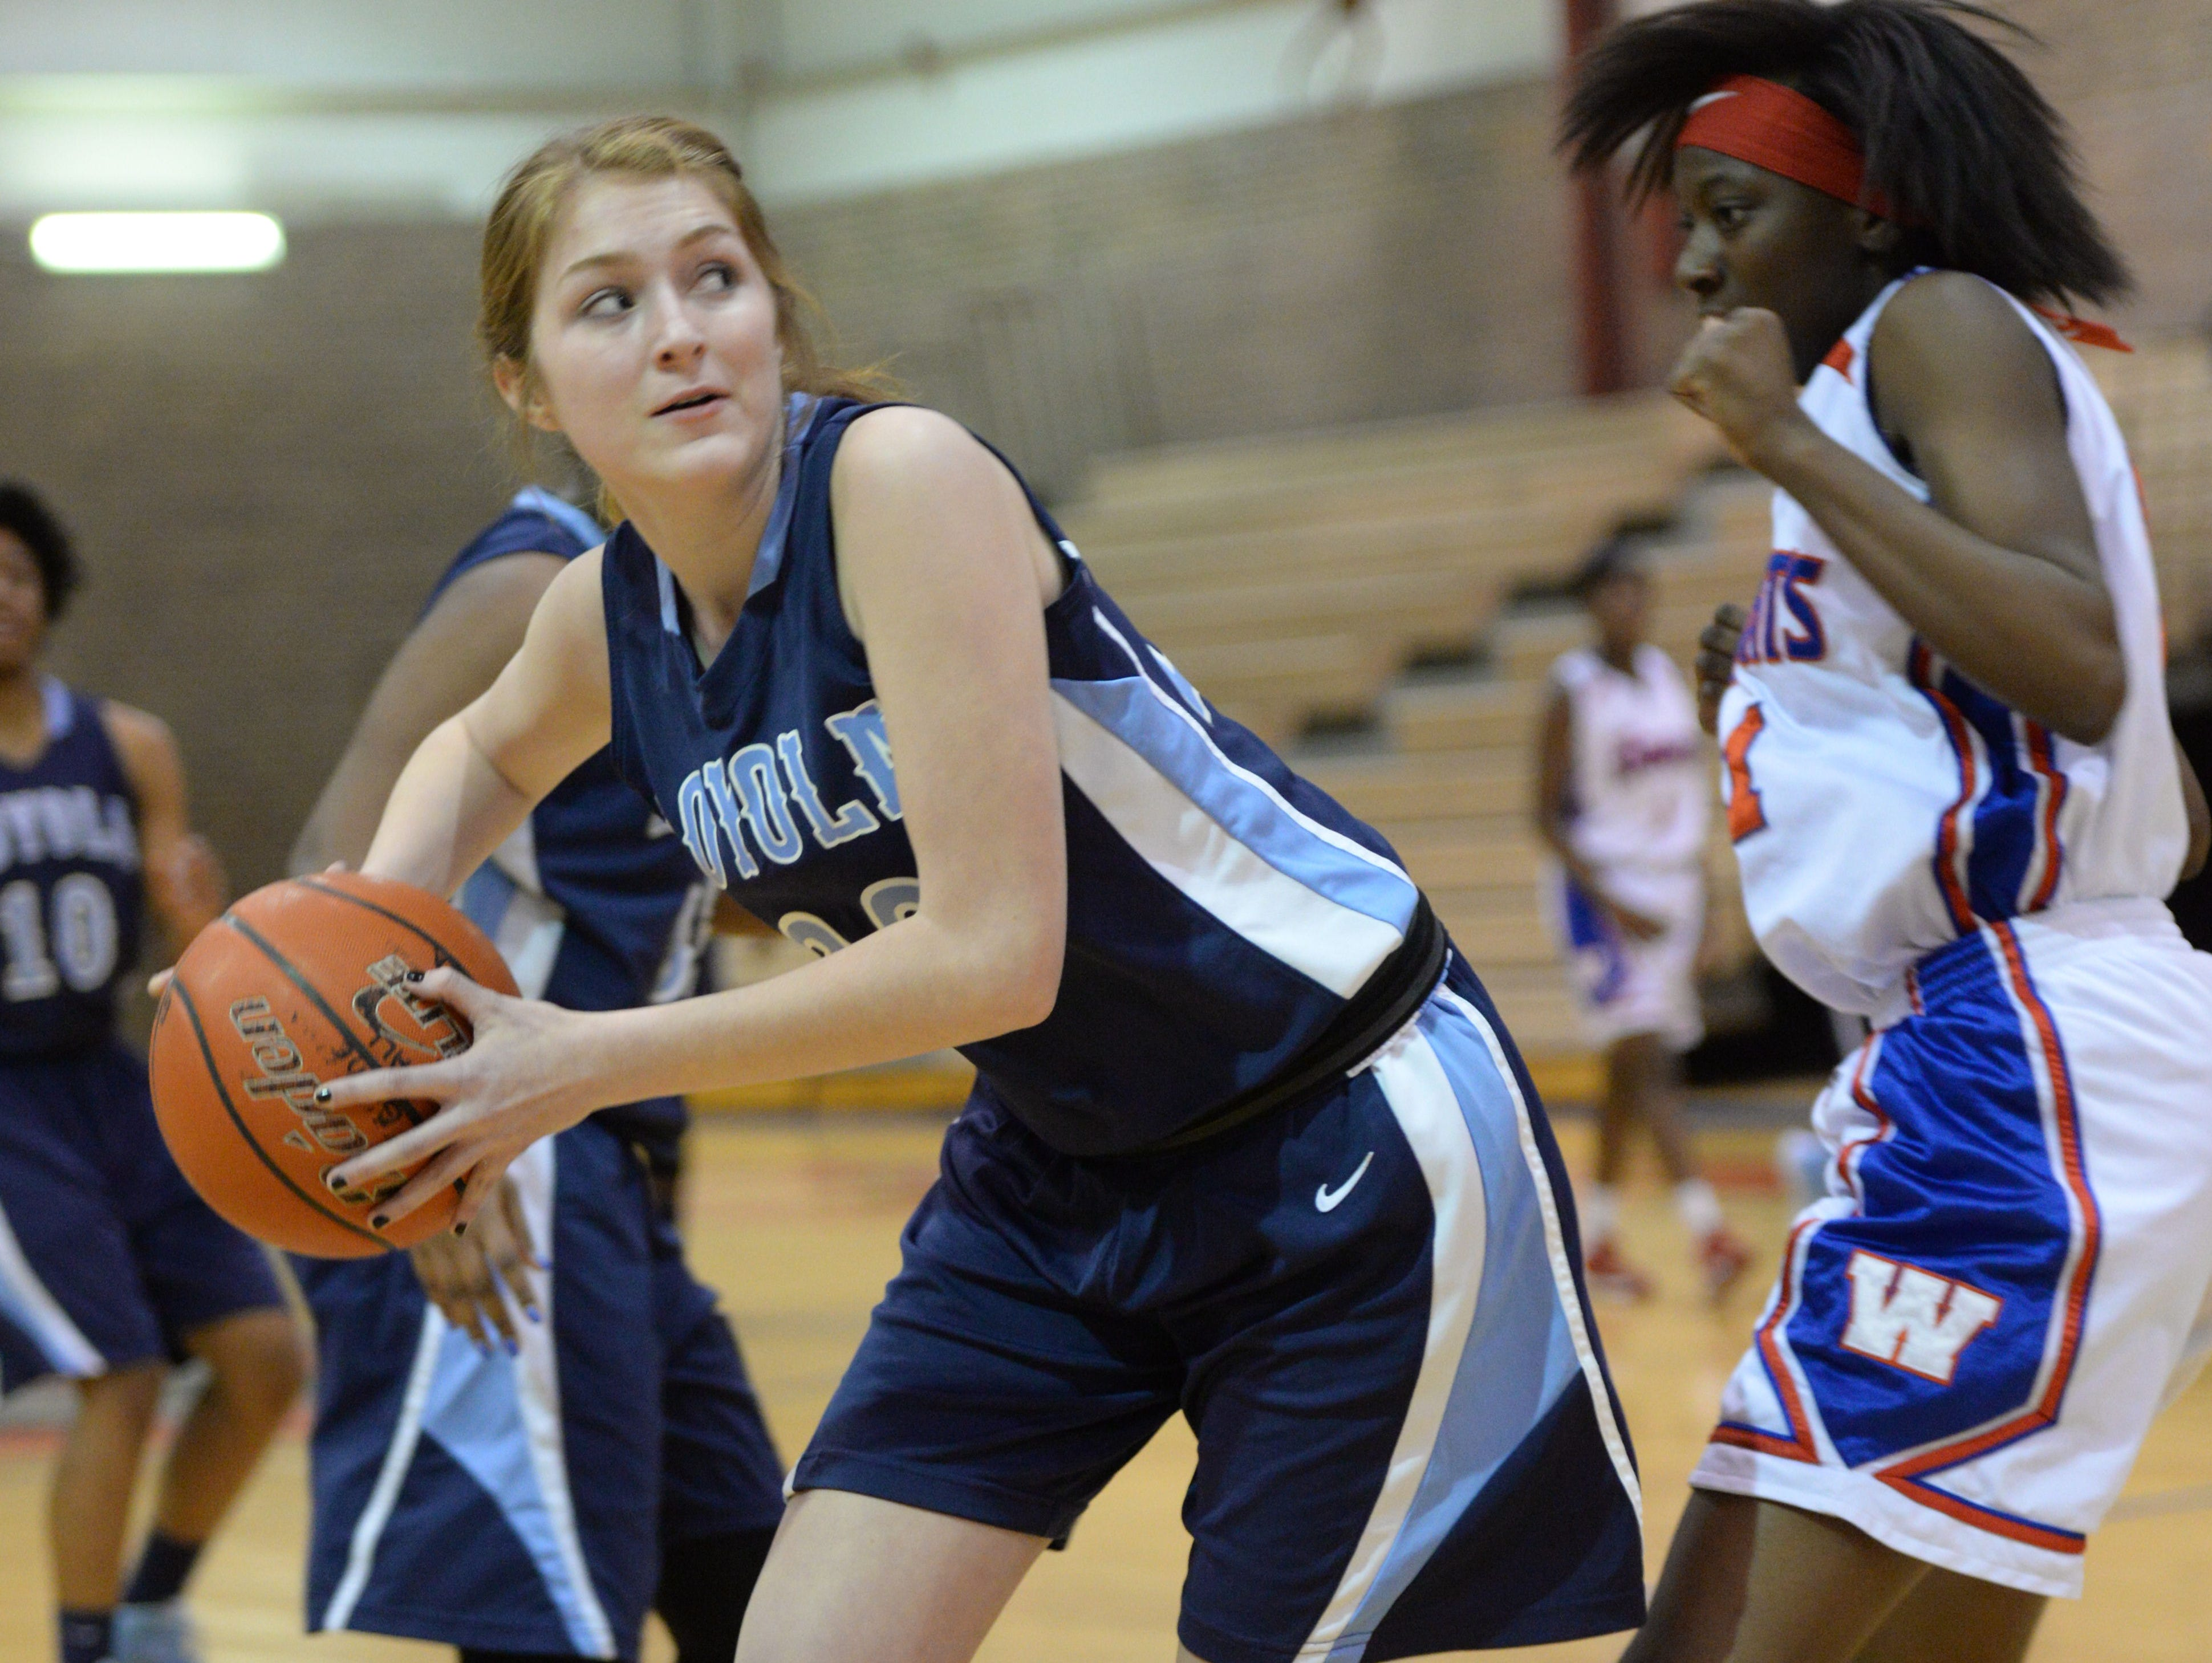 Loyola's Katherine Jones spins for the bucket on Friday night against Woodlawn.